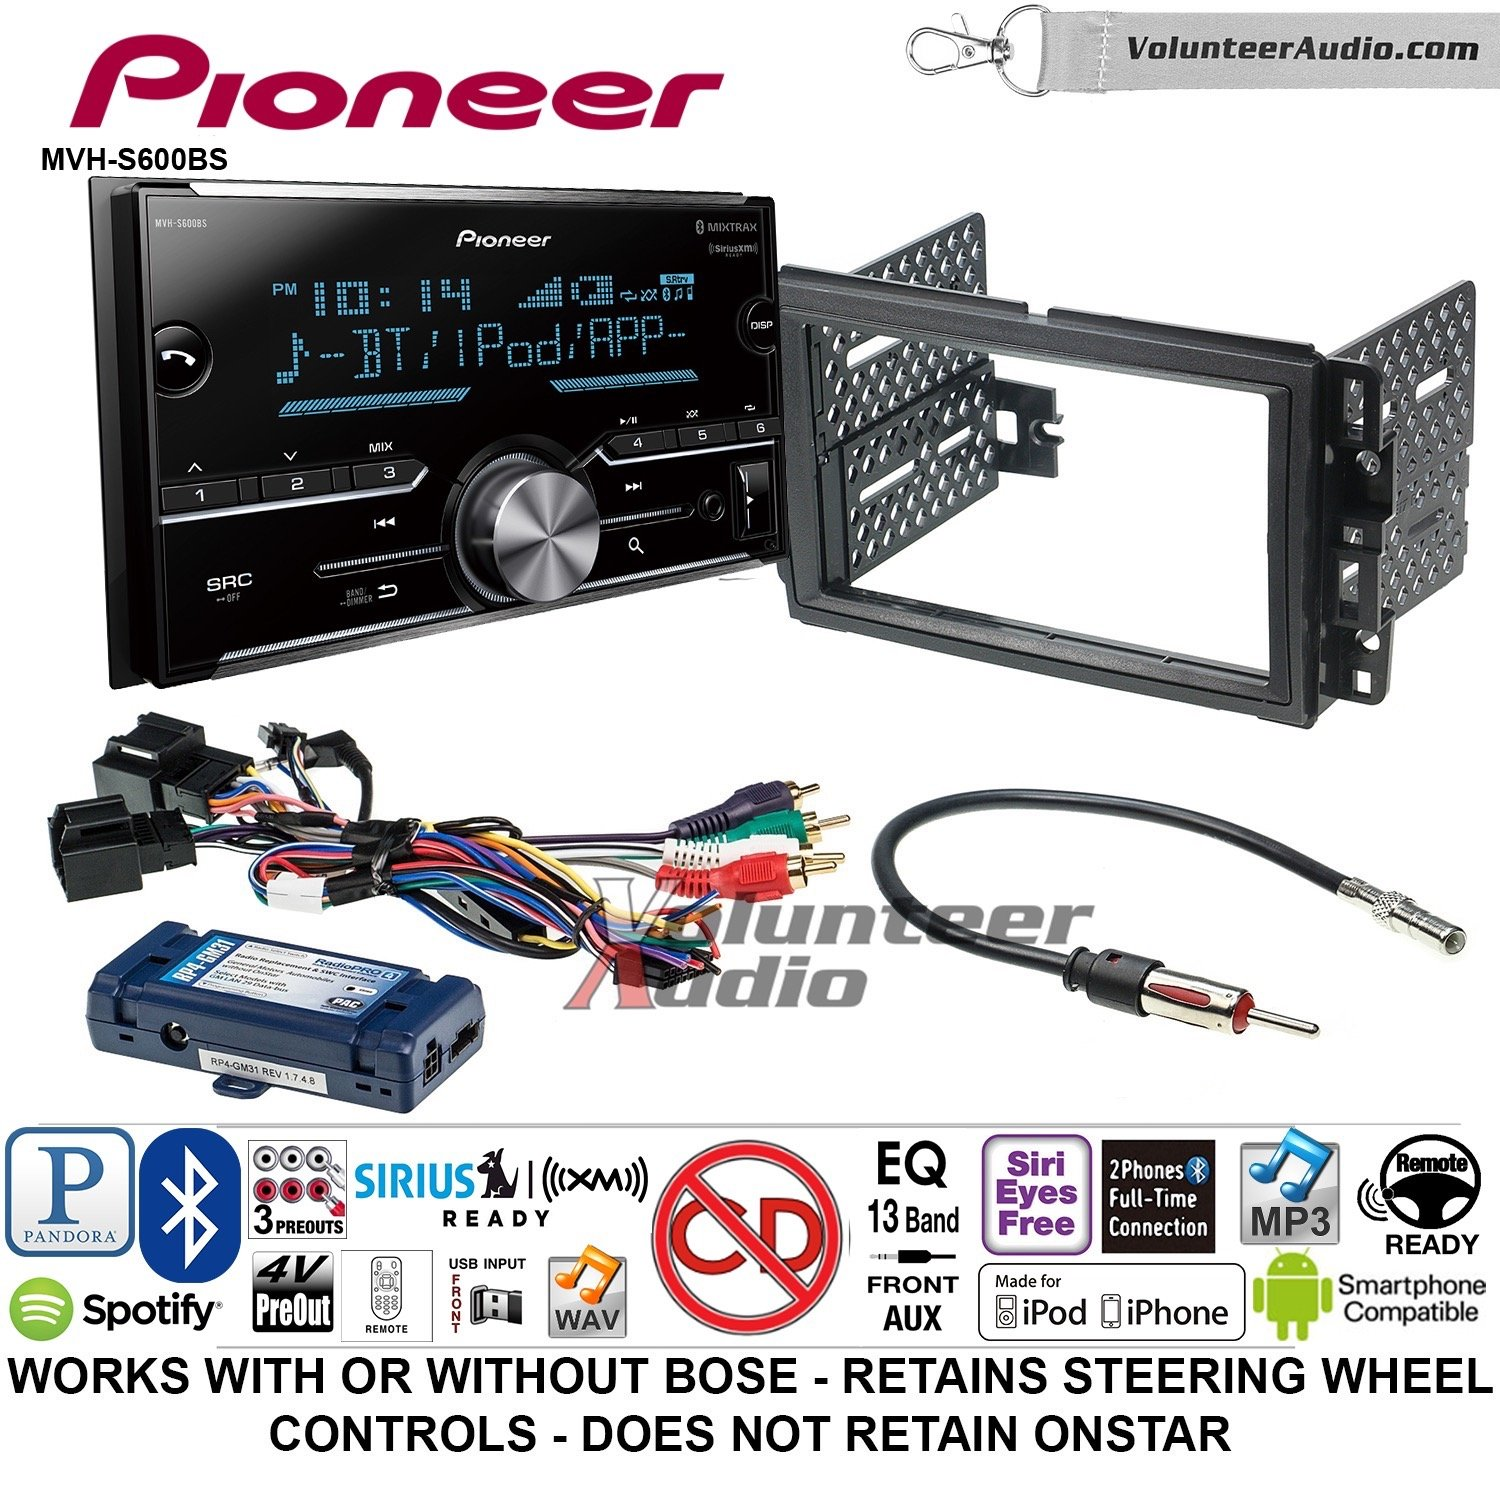 Pioneer MVH-S600BS Double Din Radio Install Kit with Bluetooth USB/AUX Fits 2007-2013 Silverado, Avalanche (Retains steering wheel controls)